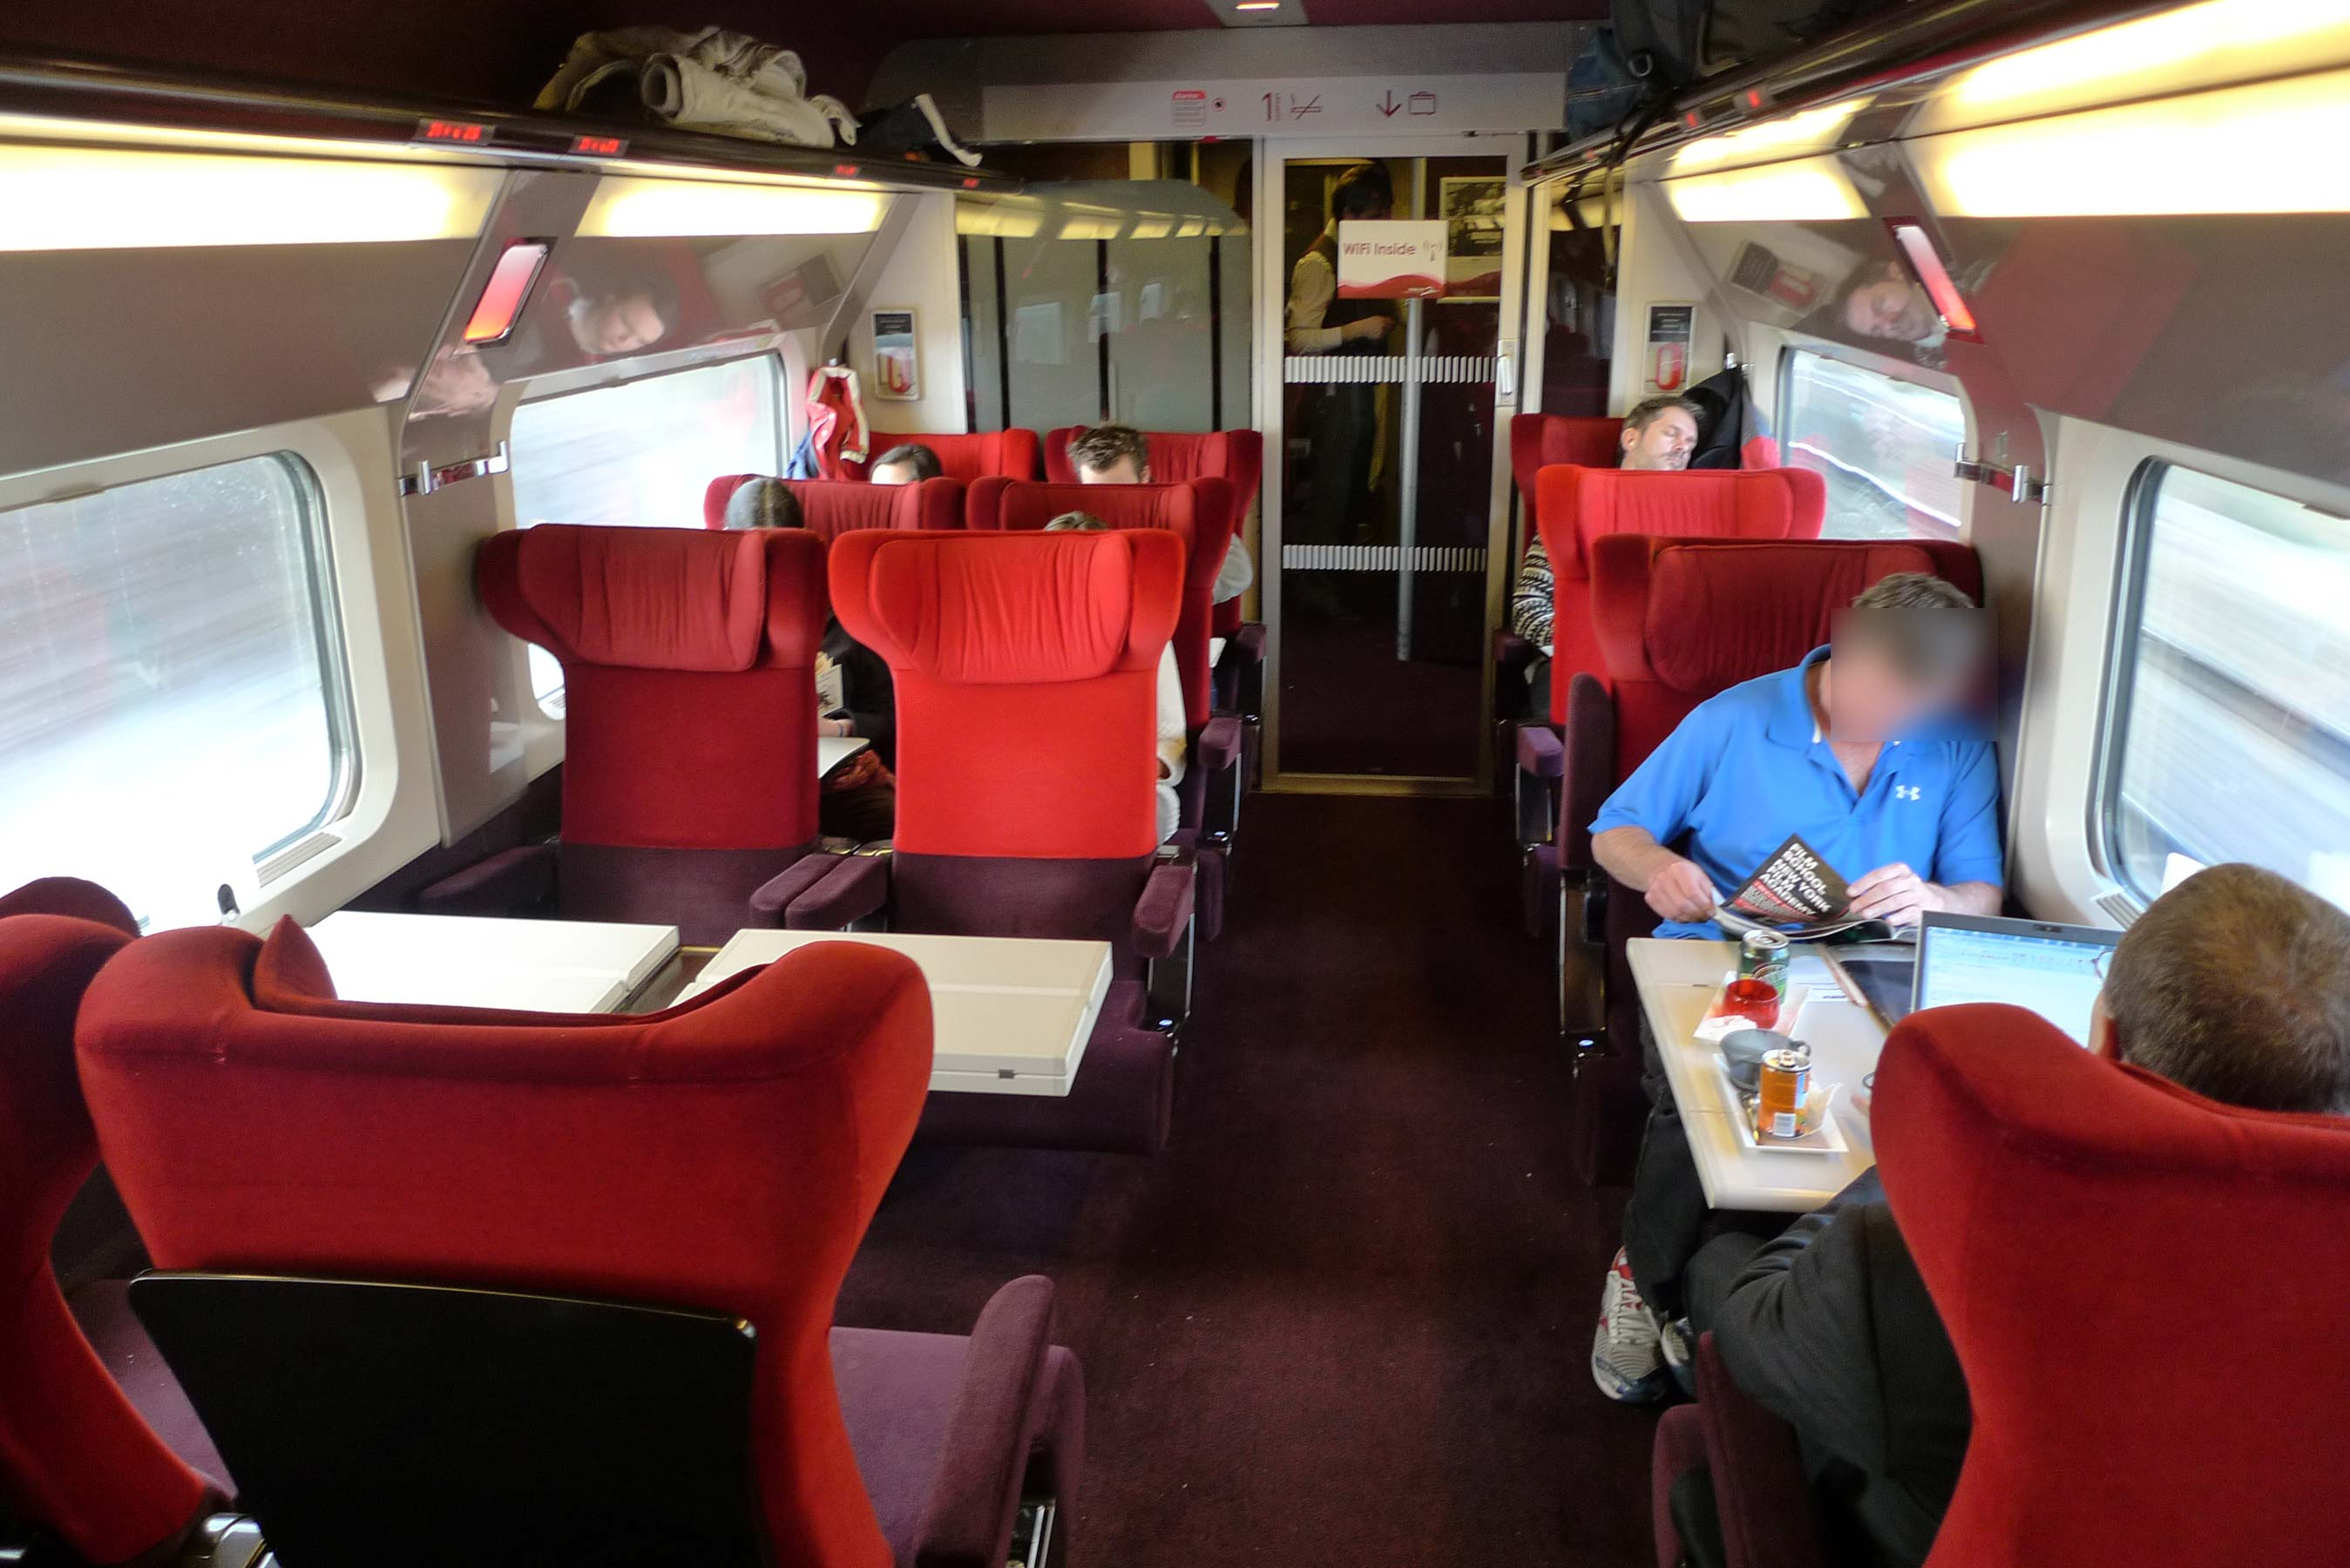 Bruxelles Paris Bus Paris To Amsterdam By Train From 35 Thalys High Speed Trains